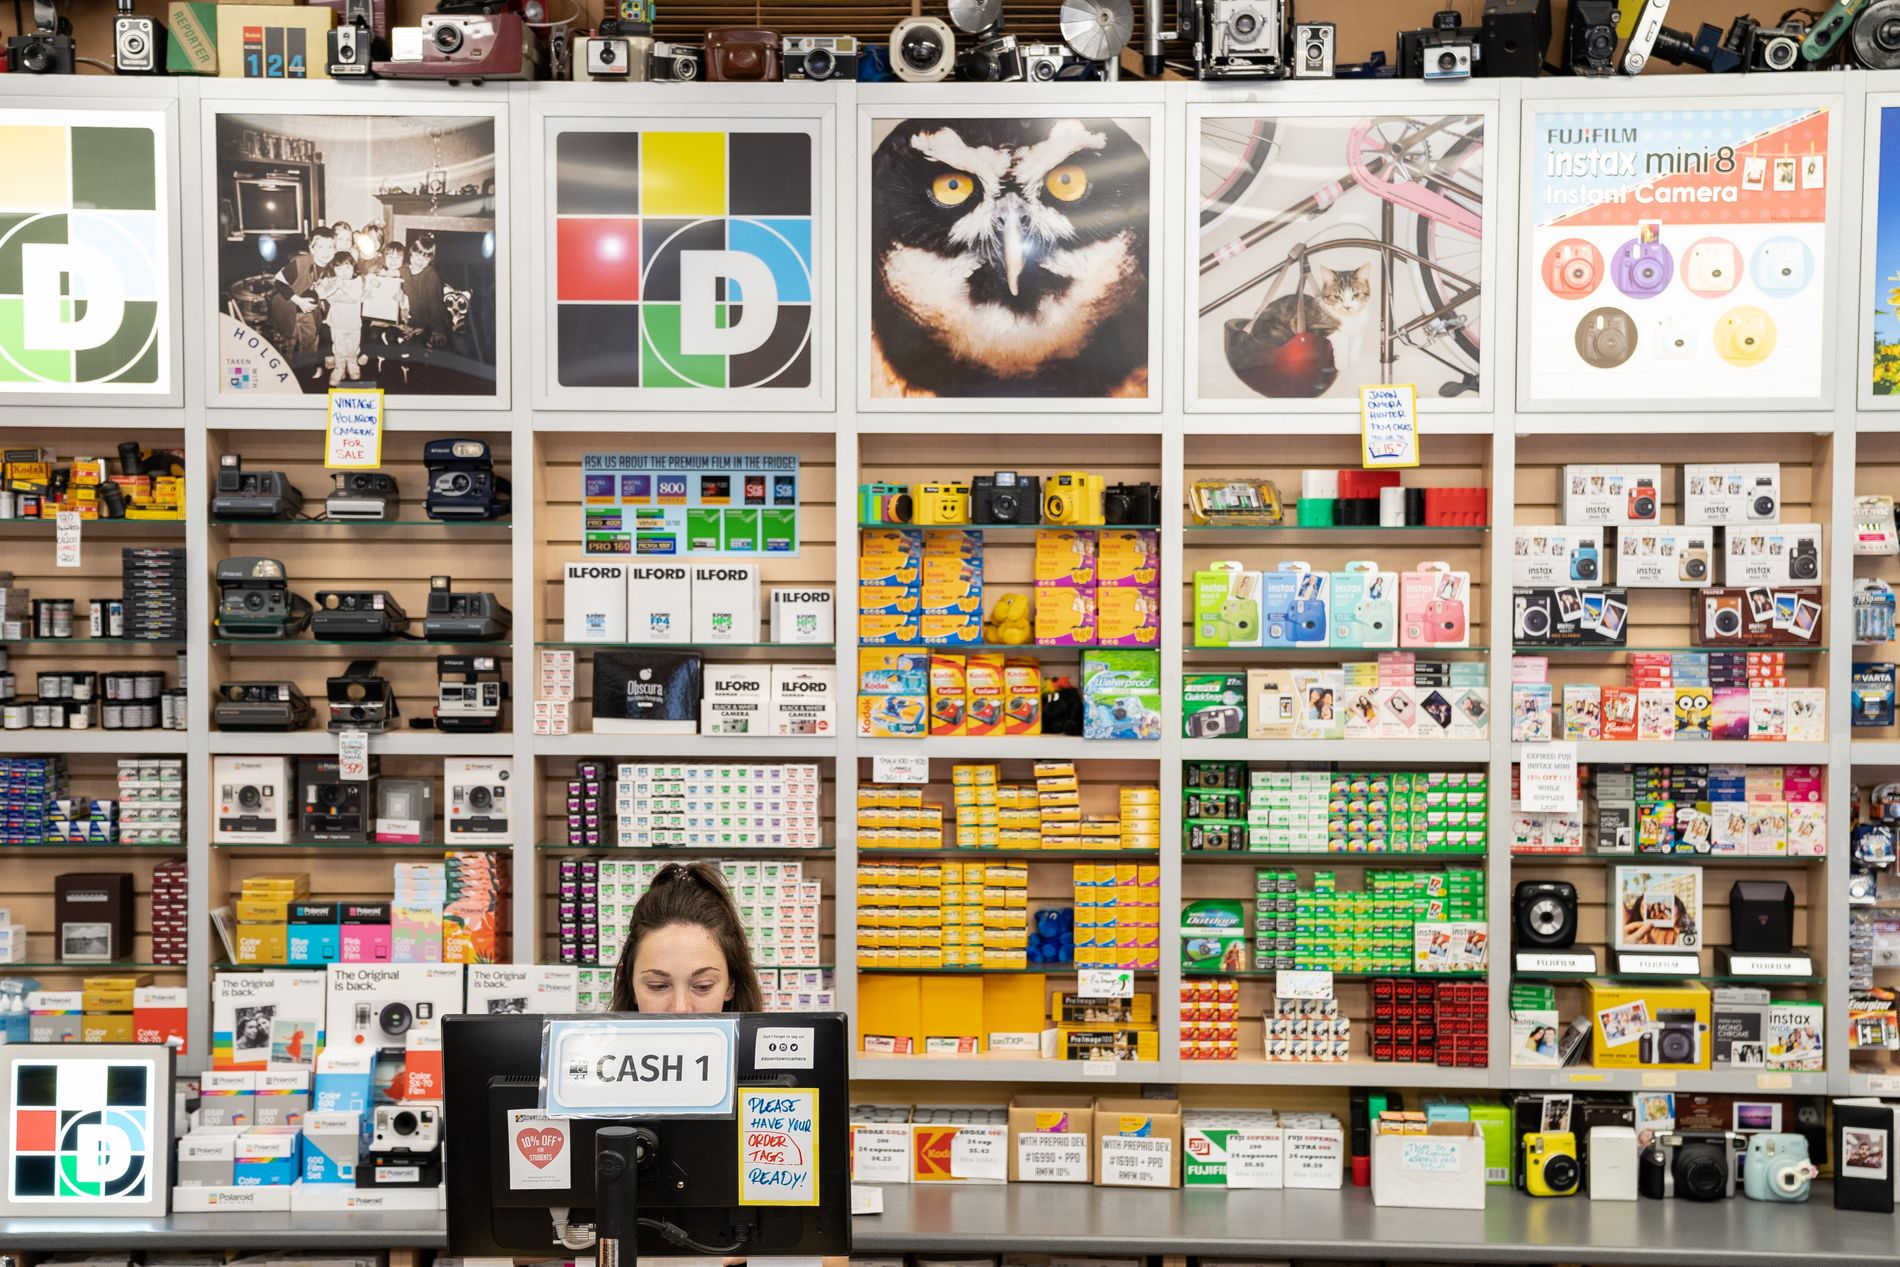 Downtown Camera has expanded its wall of film and cameras from just a few shelves to an entire wall behind the sales desk. This photo was taken on a digital camera.  MELISSA TAIT/THE GLOBE AND MAIL